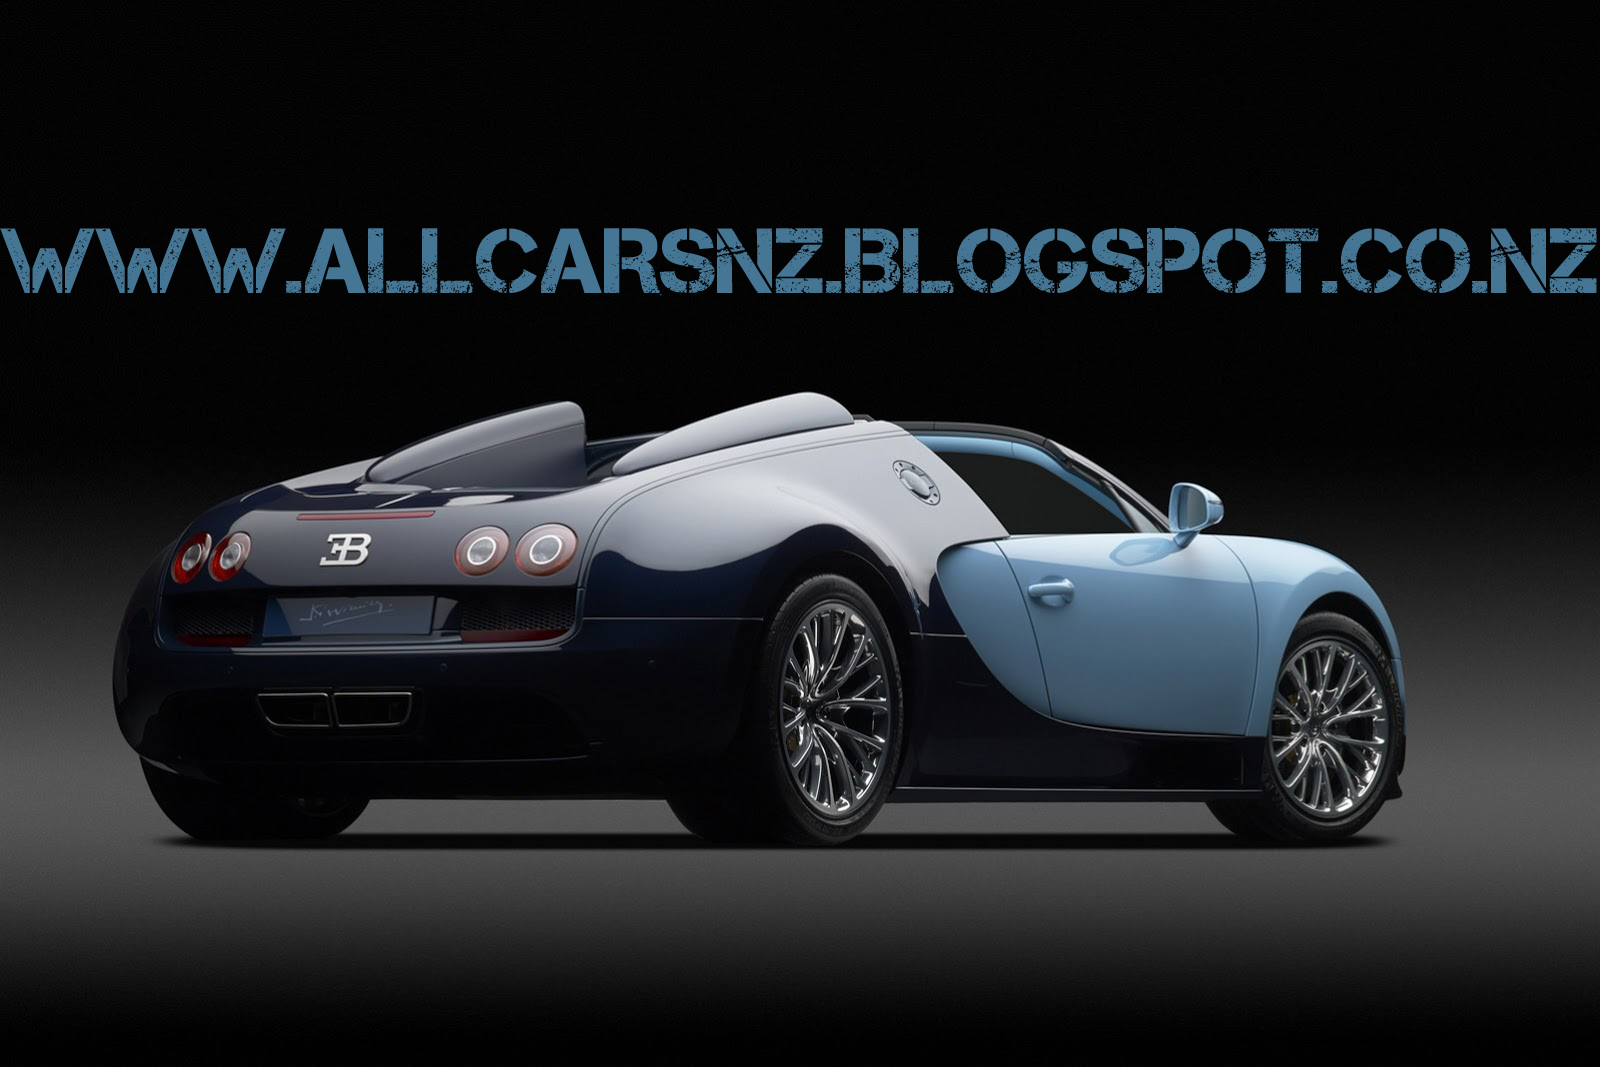 all cars nz 2013 bugatti veyron grand sport vitesse jean pierre wimille limi. Black Bedroom Furniture Sets. Home Design Ideas